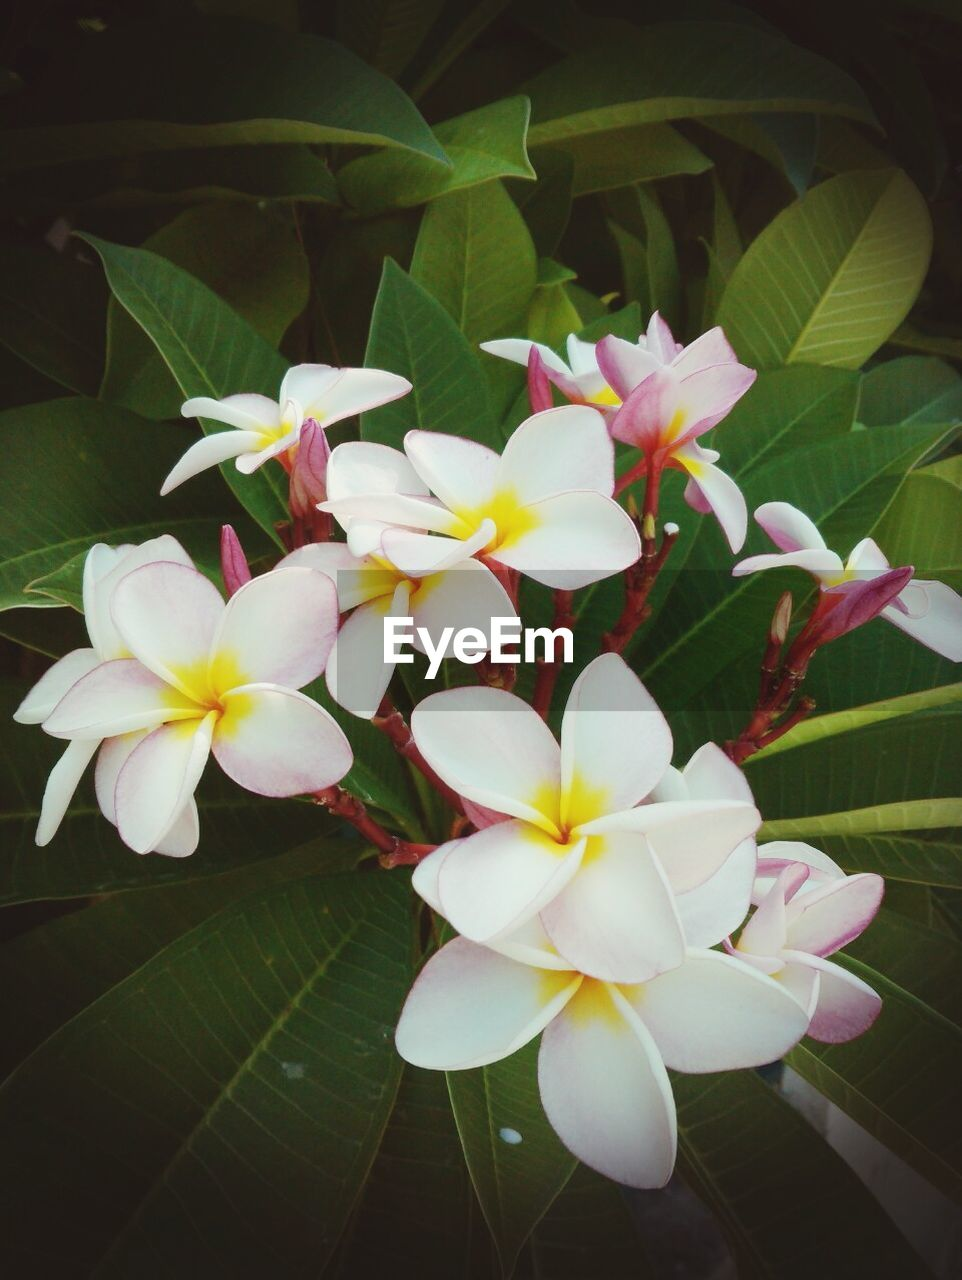 flower, petal, growth, flower head, fragility, beauty in nature, leaf, freshness, nature, blooming, periwinkle, close-up, frangipani, day, plant, no people, outdoors